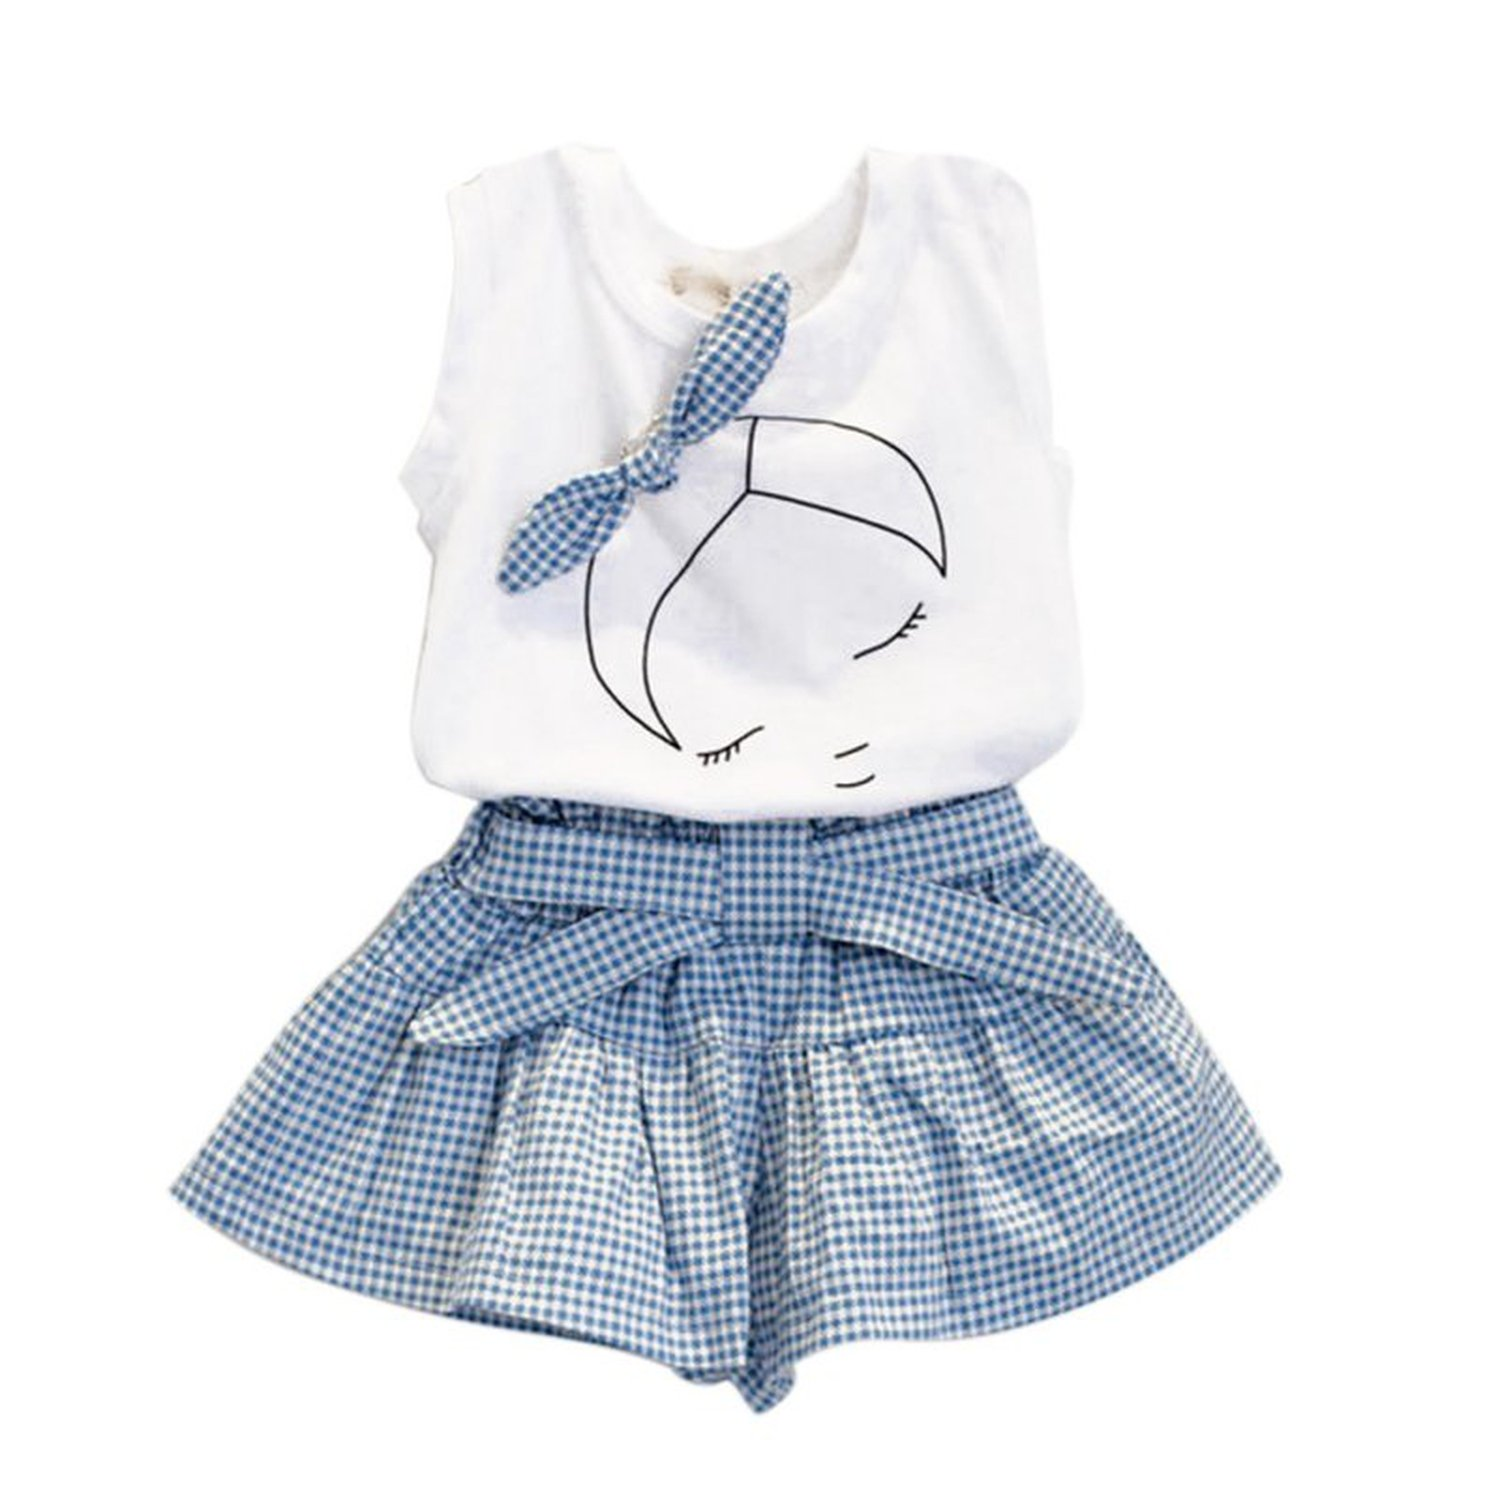 Zcaosma Baby Girl Sets Children Bow T-Shirt Tops+Plaids & Check Dress Pants,Sky Blue,Zt